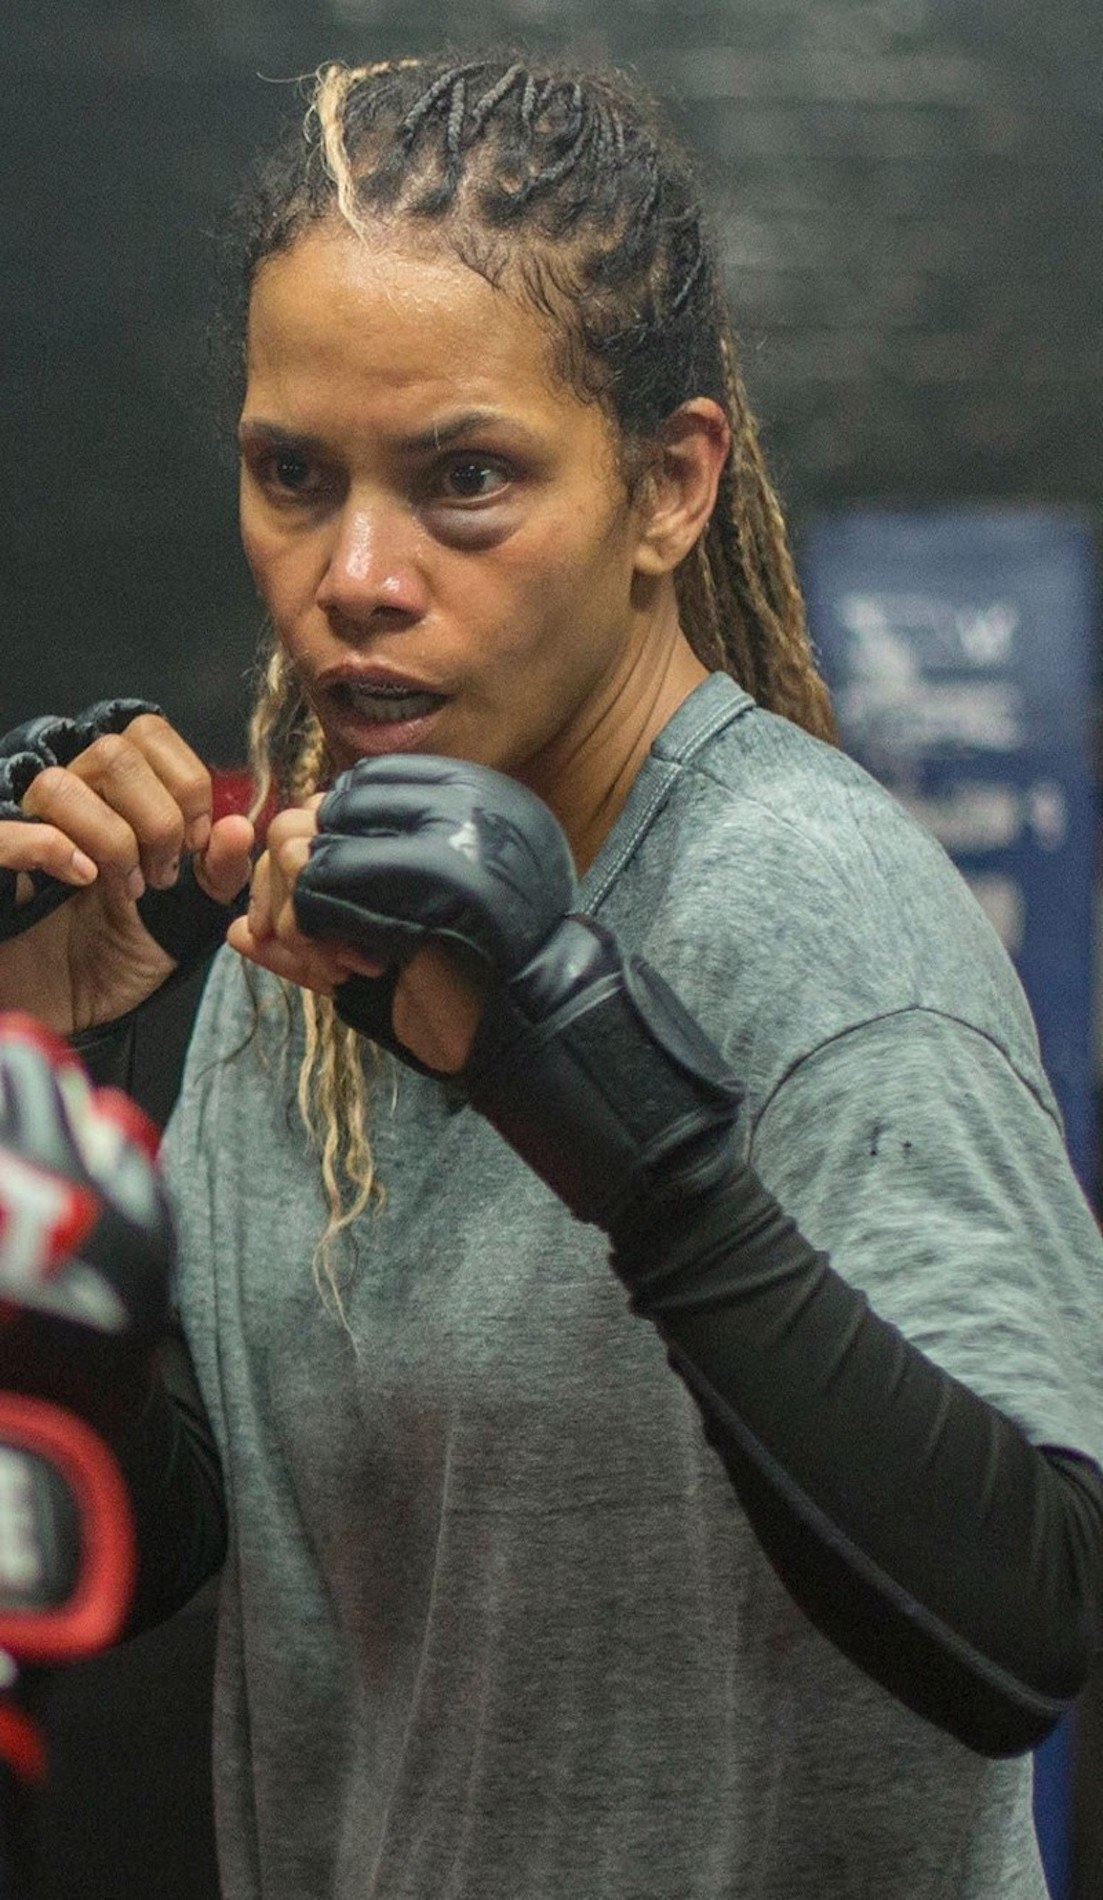 Halle Berry as a boxer in the ring with her eye bruised